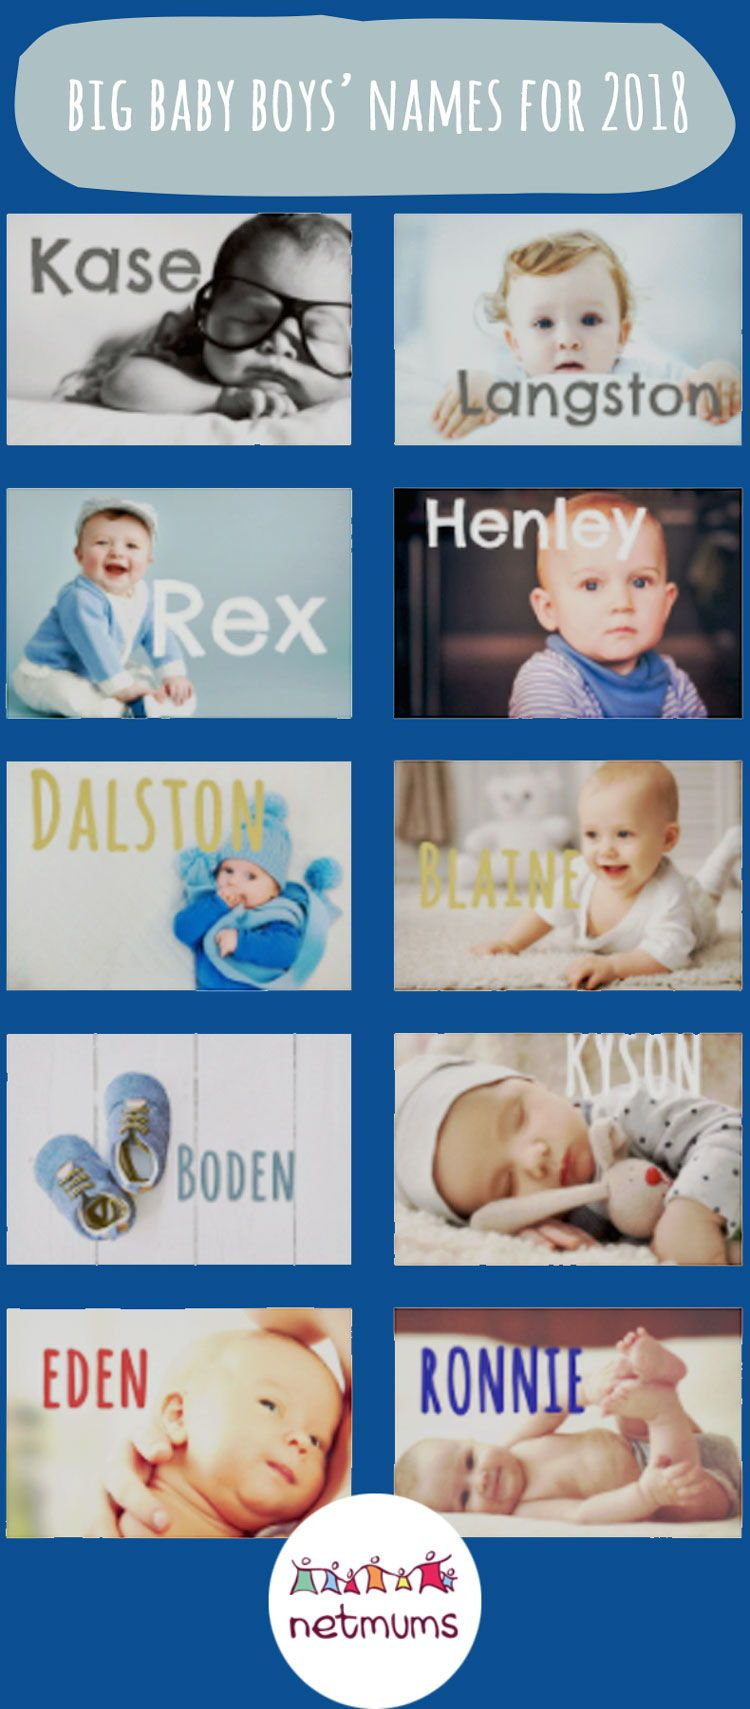 Baby boys' names we predict will be huge